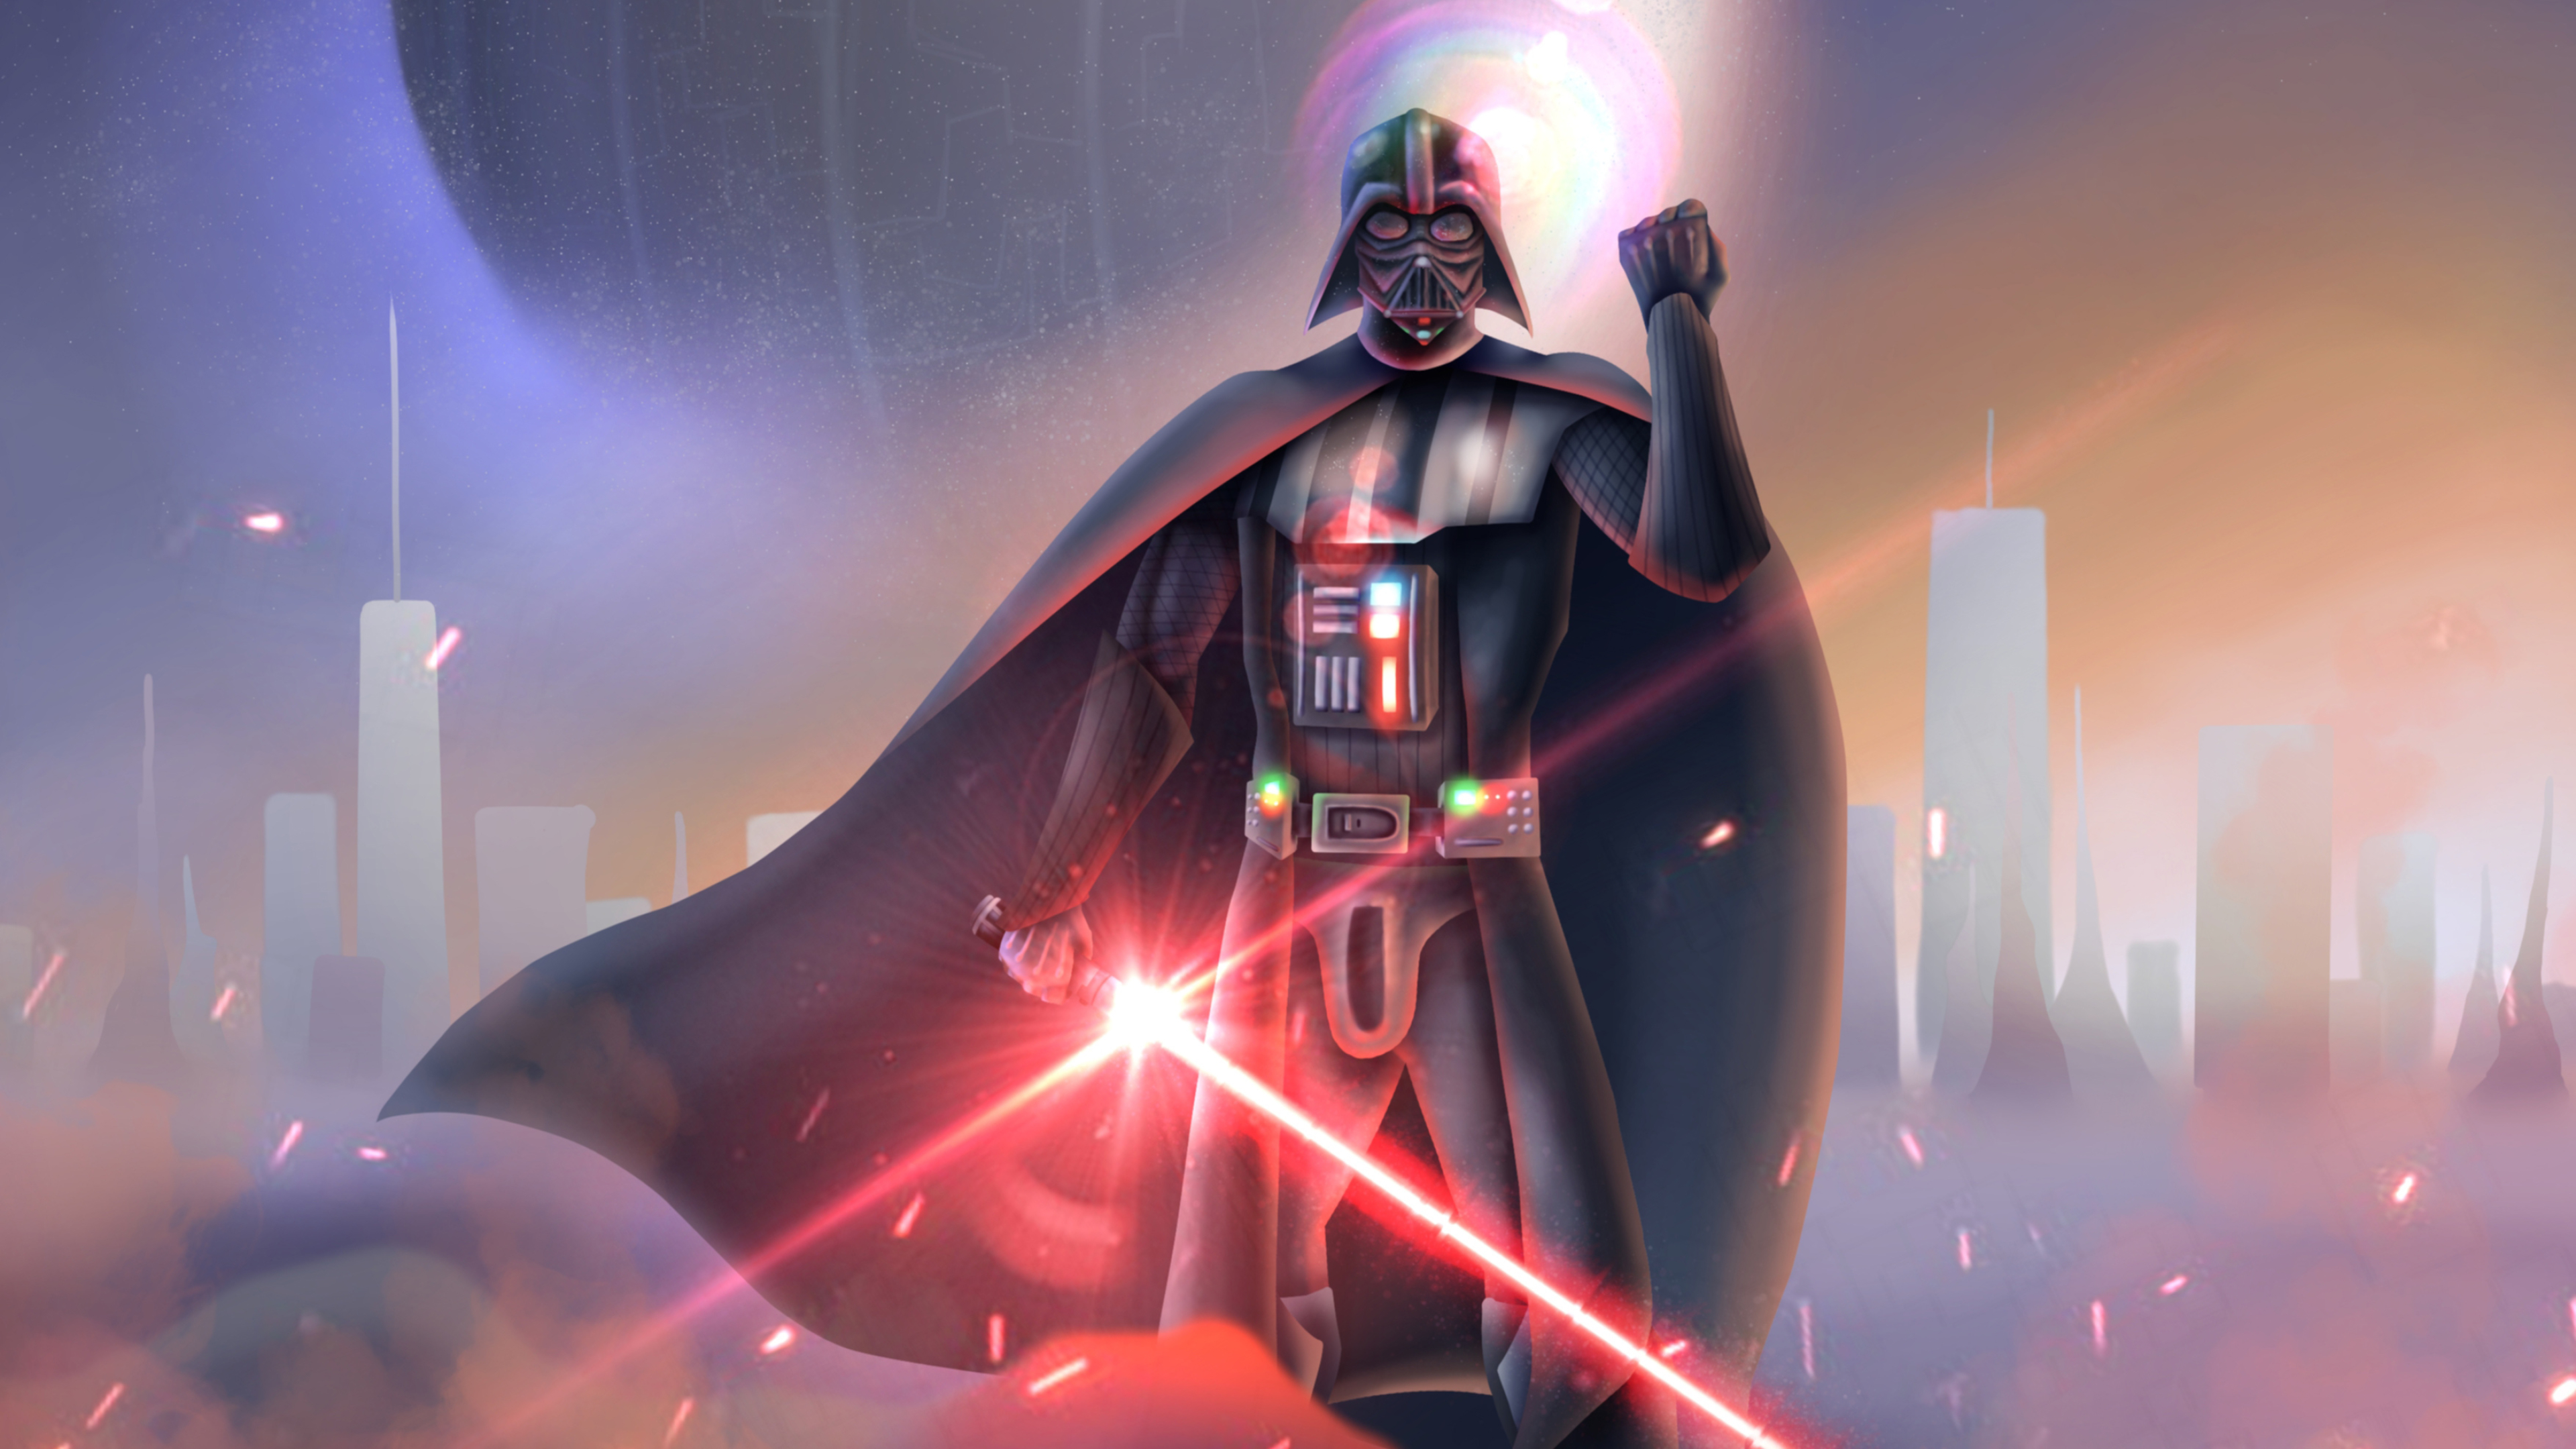 3840x2160 Darth Vader Lightsaber Star Wars 4k Wallpaper Hd Movies 4k Wallpapers Images Photos And Background